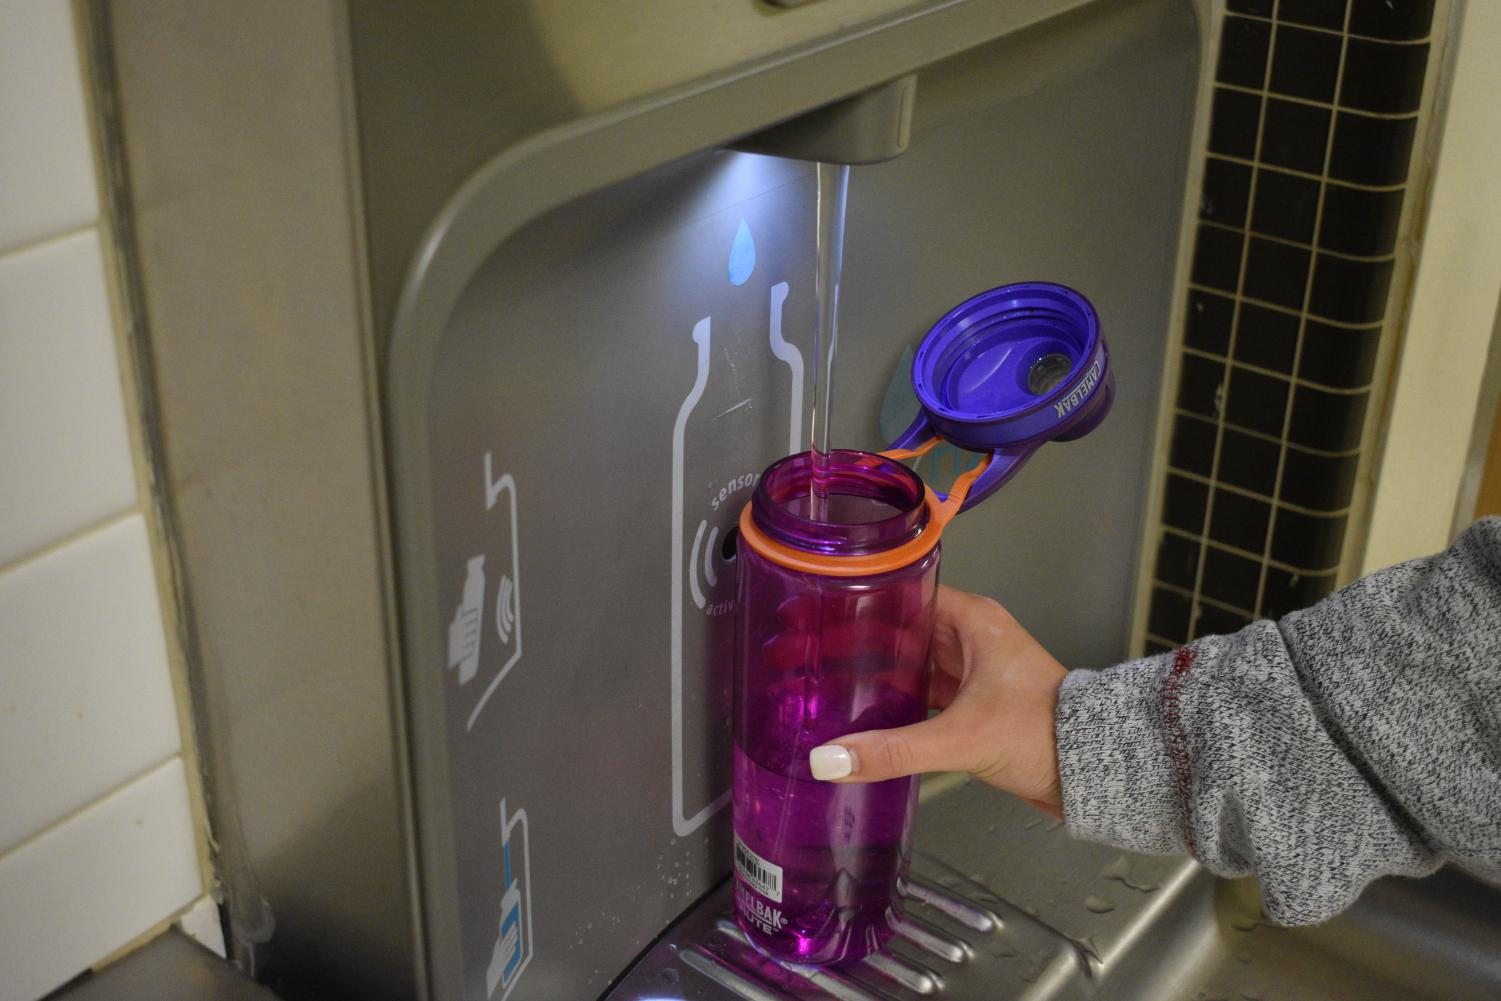 Many students accepted the dare for this week and spread kindness through the school by filling up a friend's water bottle for them.